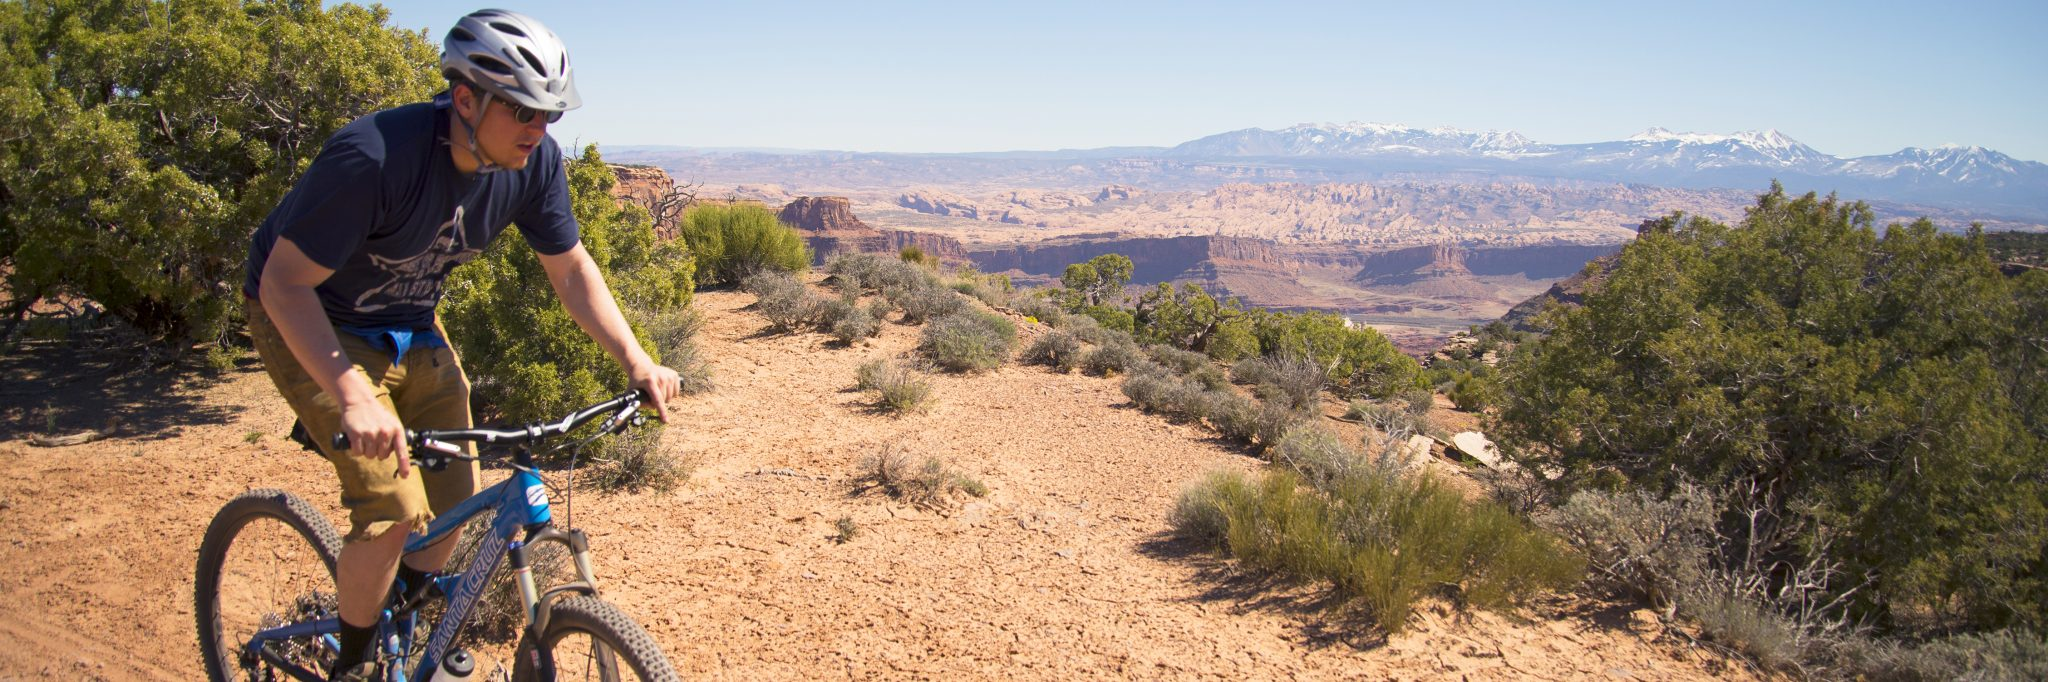 Rider on the Big Chief loop of the Dead Horse Point Singletrack guided mountain bike tour